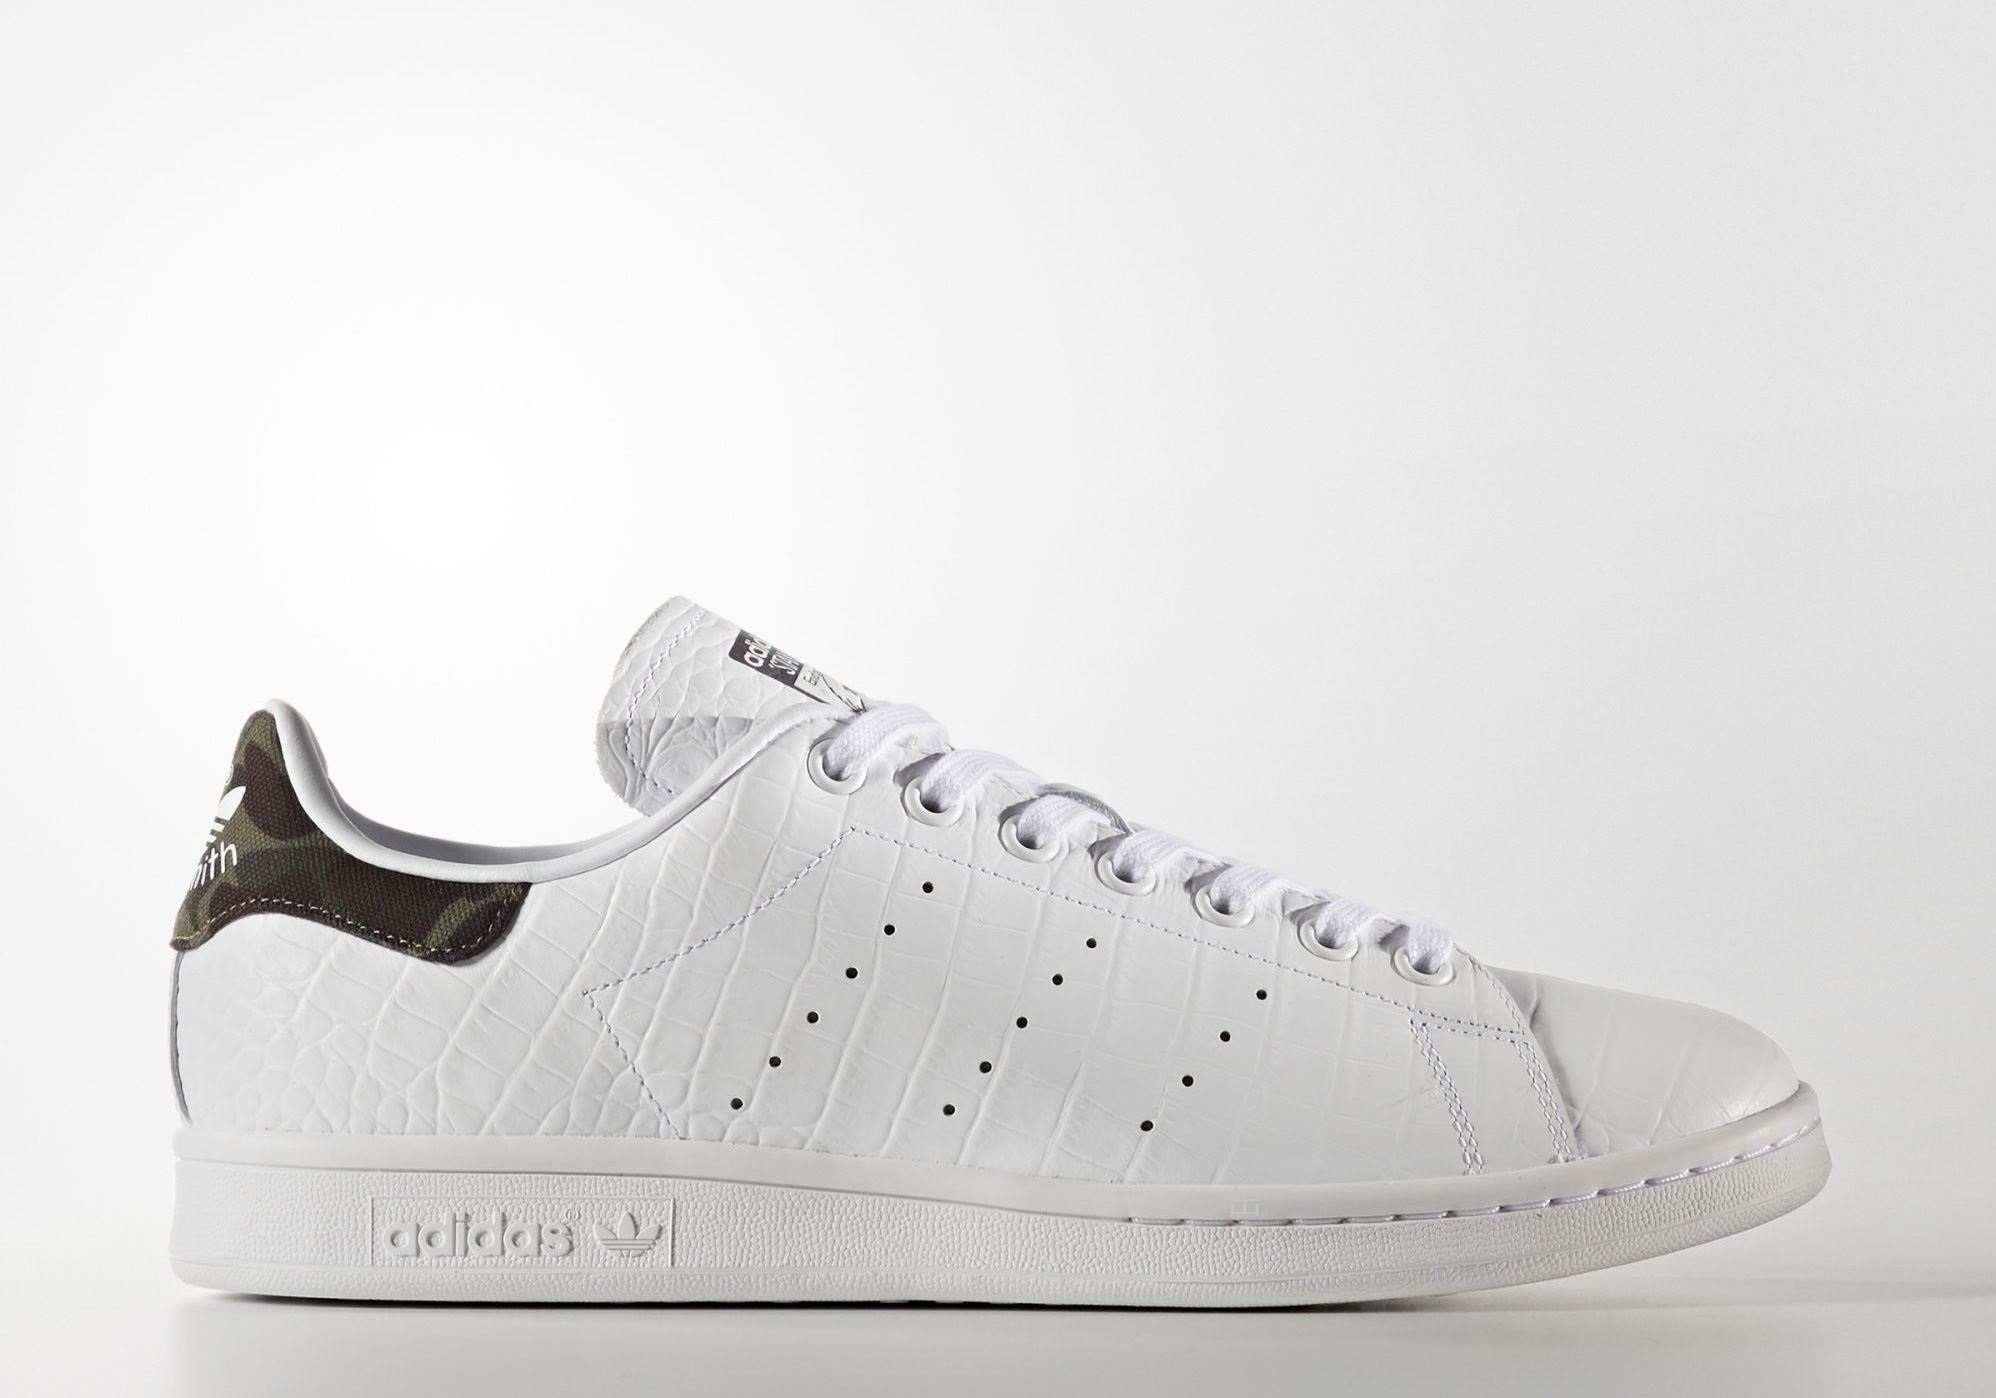 new arrival 779d4 60fe6 The adidas Originals Stan Smith Gets Some Updated Flair ...